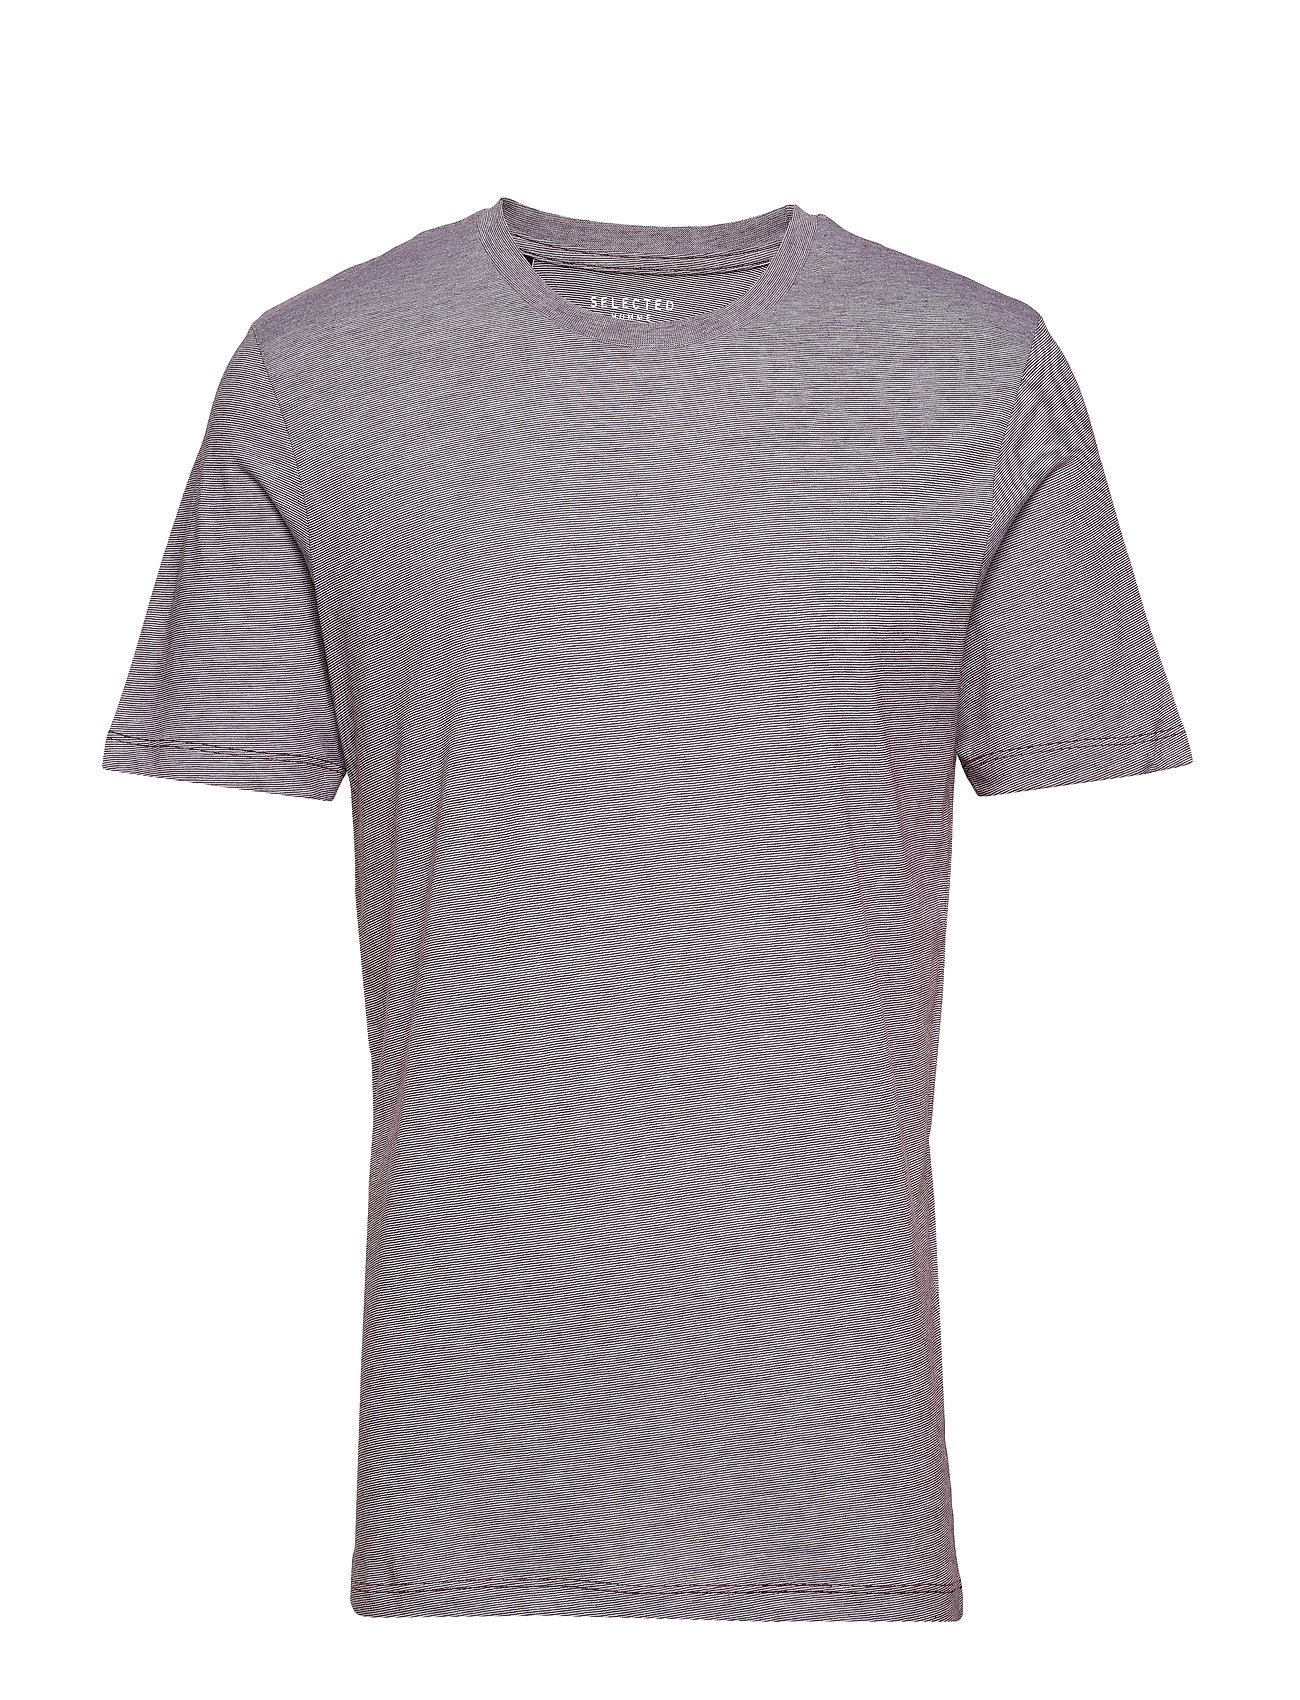 Selected Homme SLHTHEPERFECT MELANGE SS O-NECK TEE B - WINETASTING